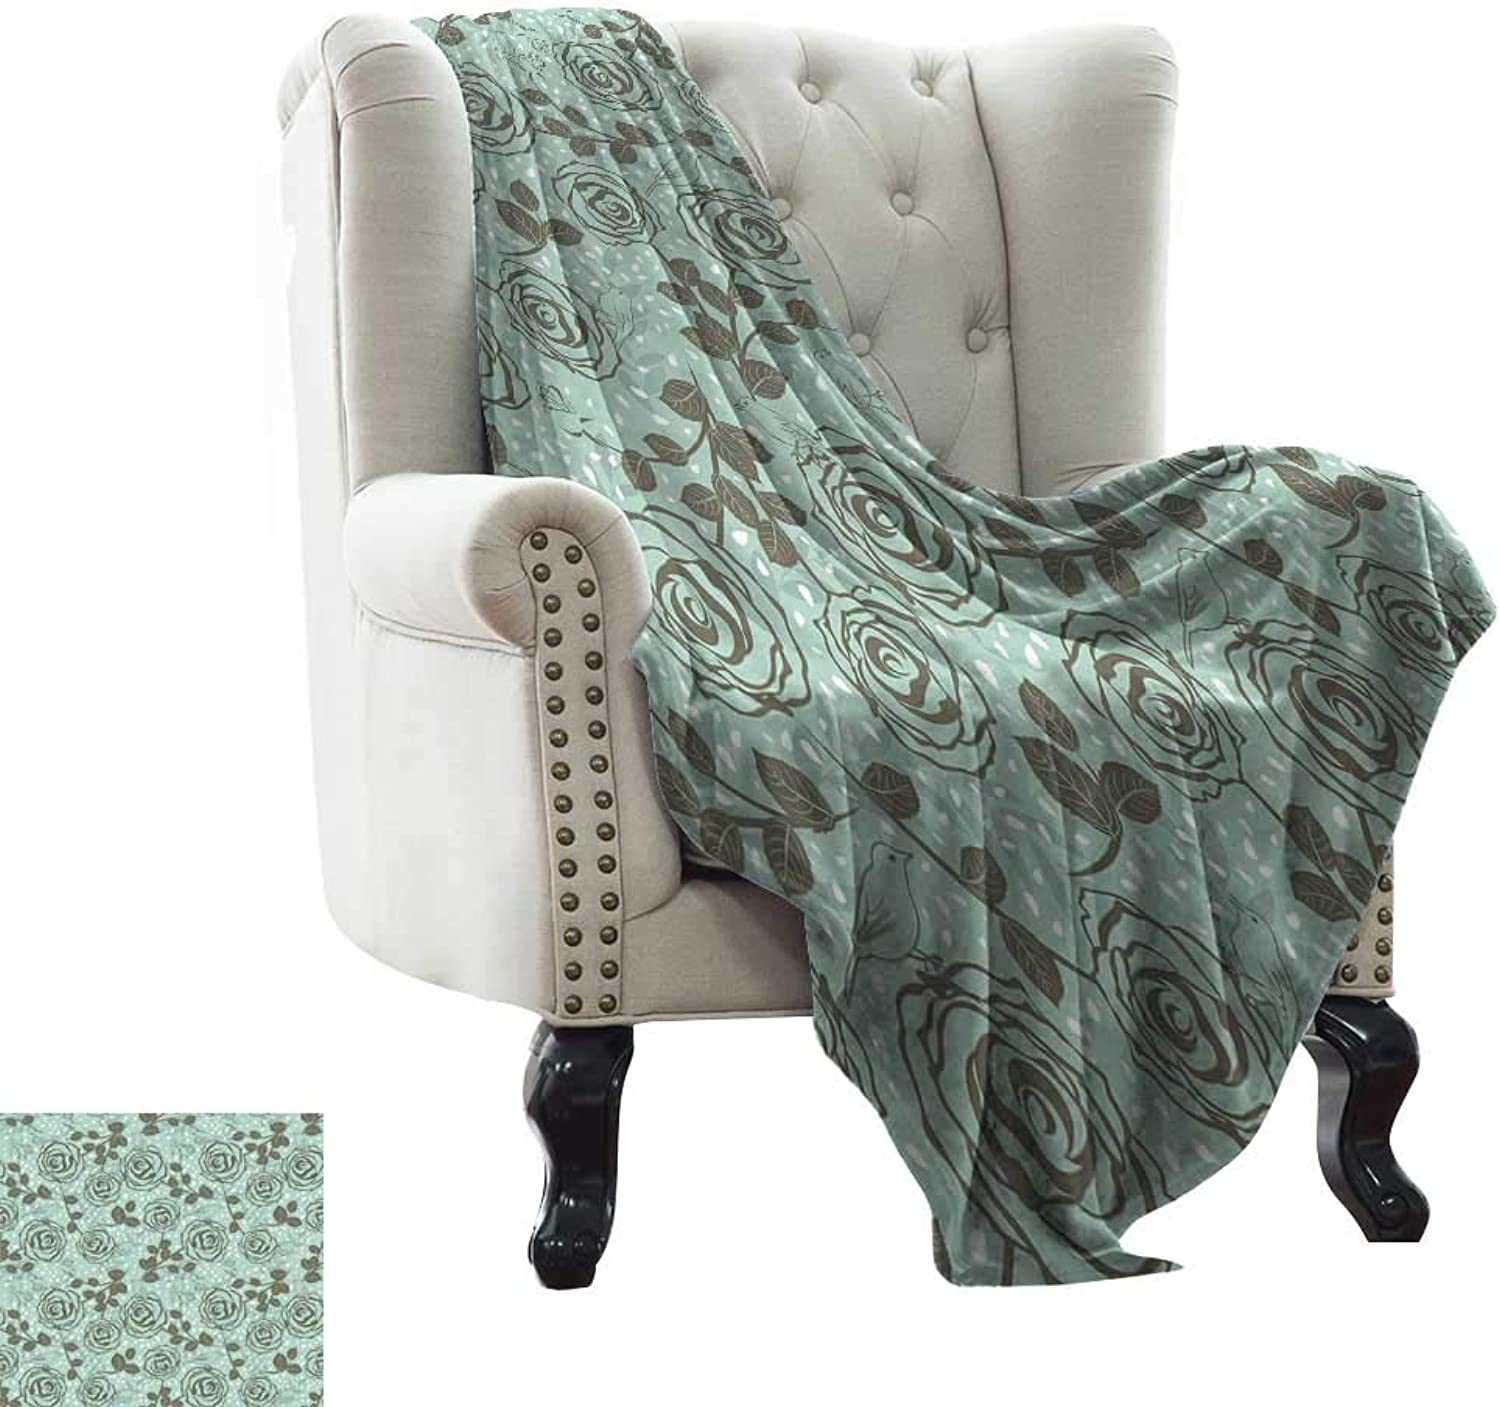 BelleAckerman Weighted Blanket for Kids Floral,Romantic Season Inspirations with pinks Birds on Tree Branches Summer Design,Seafoam Sage Green Flannel Blankets Made with Plush Microfiber 35 x60